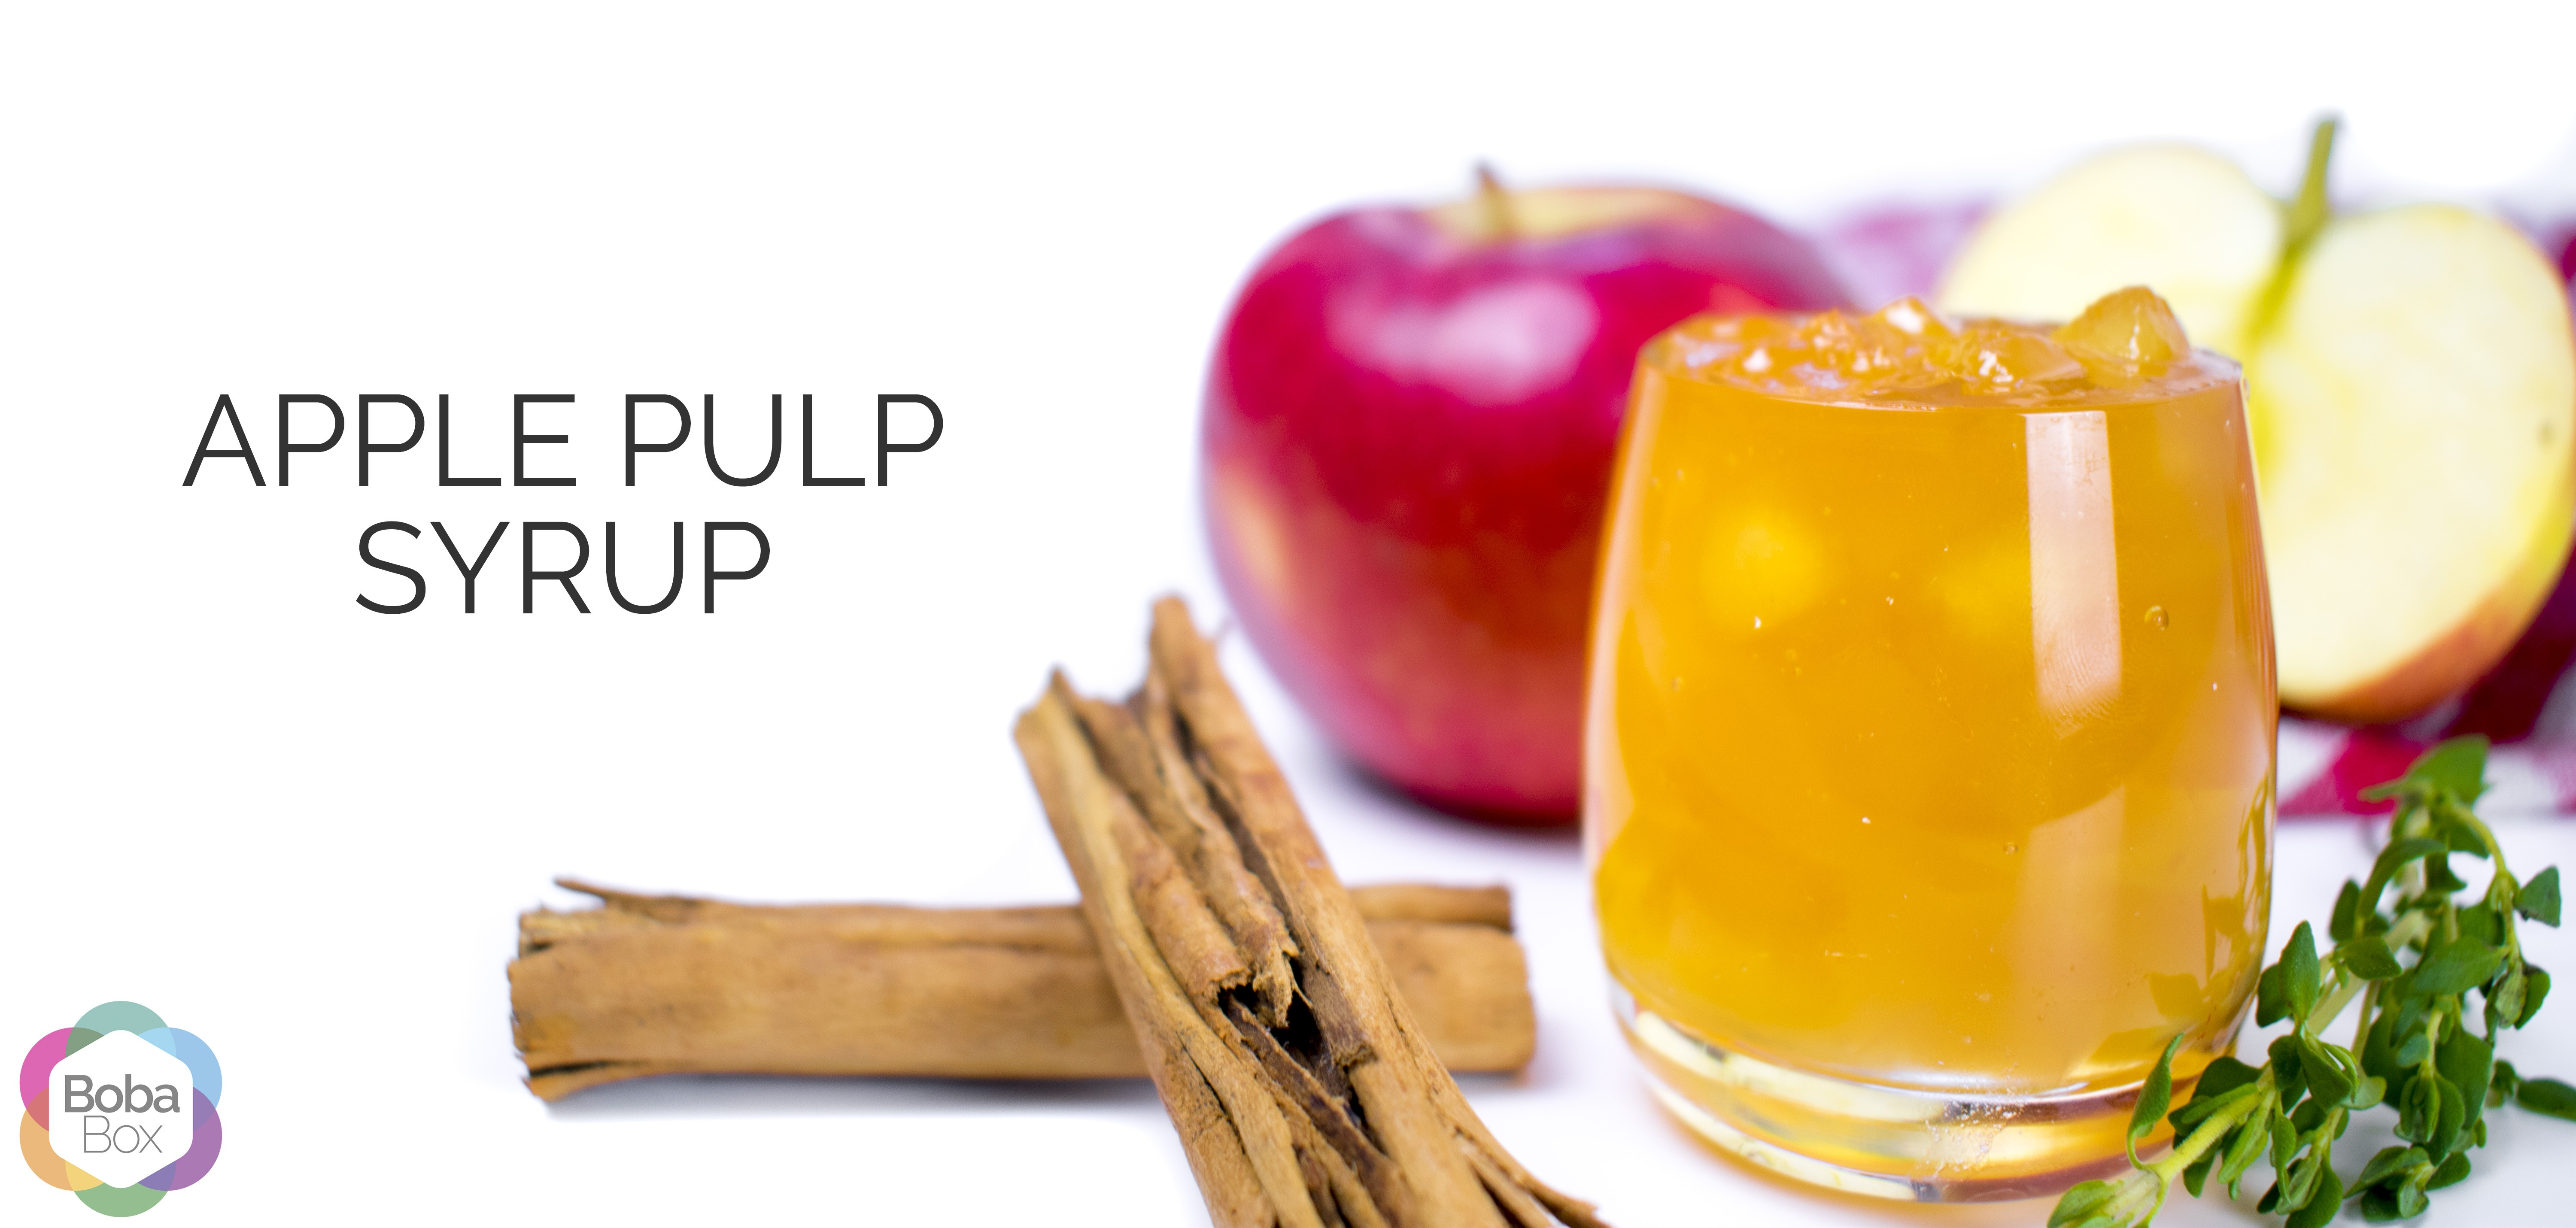 Apple Pulp Syrup